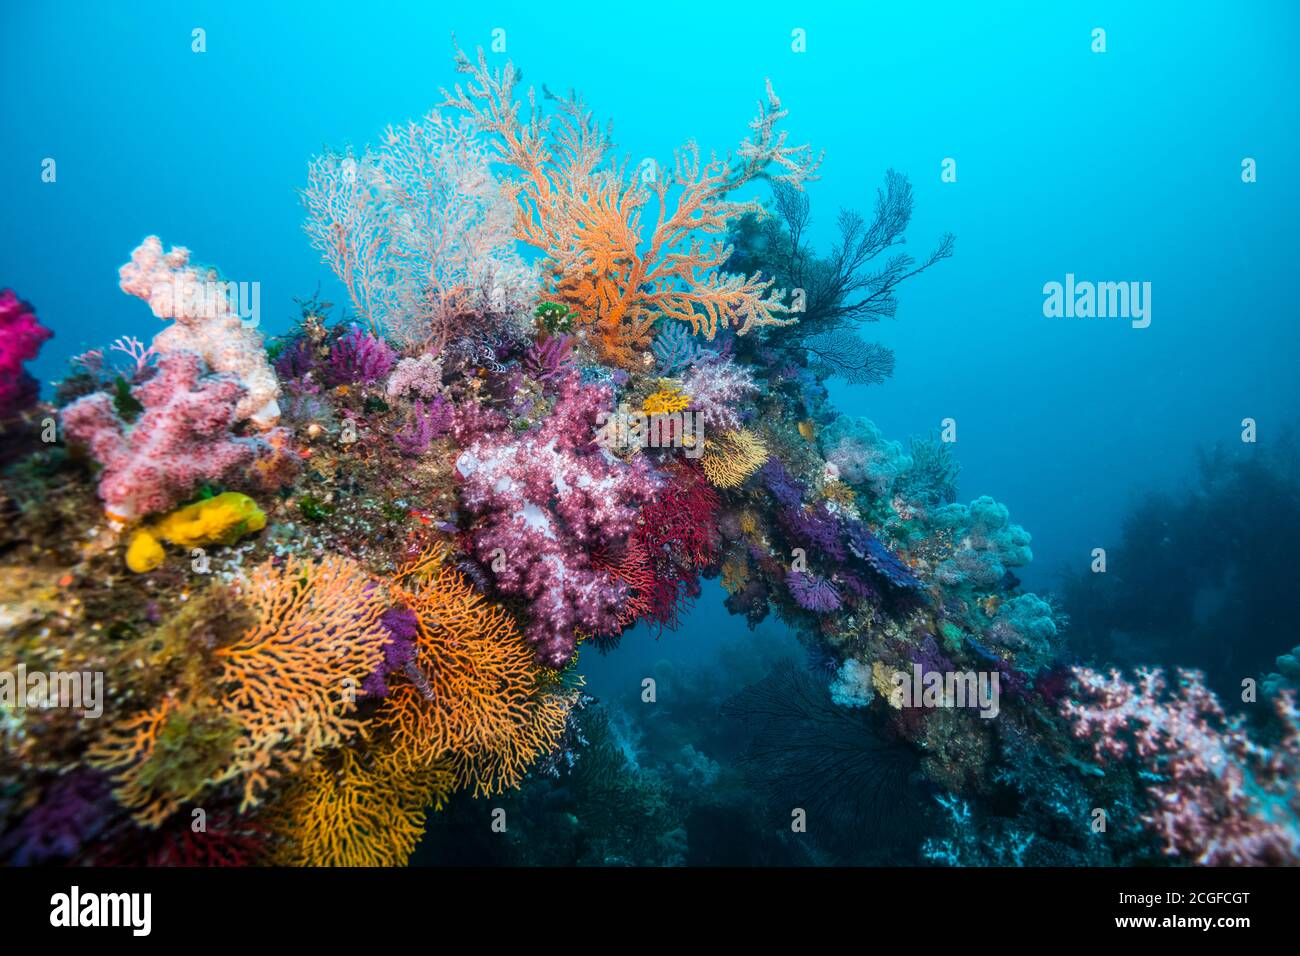 A lot of colorful soft corals cover the artificial fish reef against the background of the blue water. Stock Photo